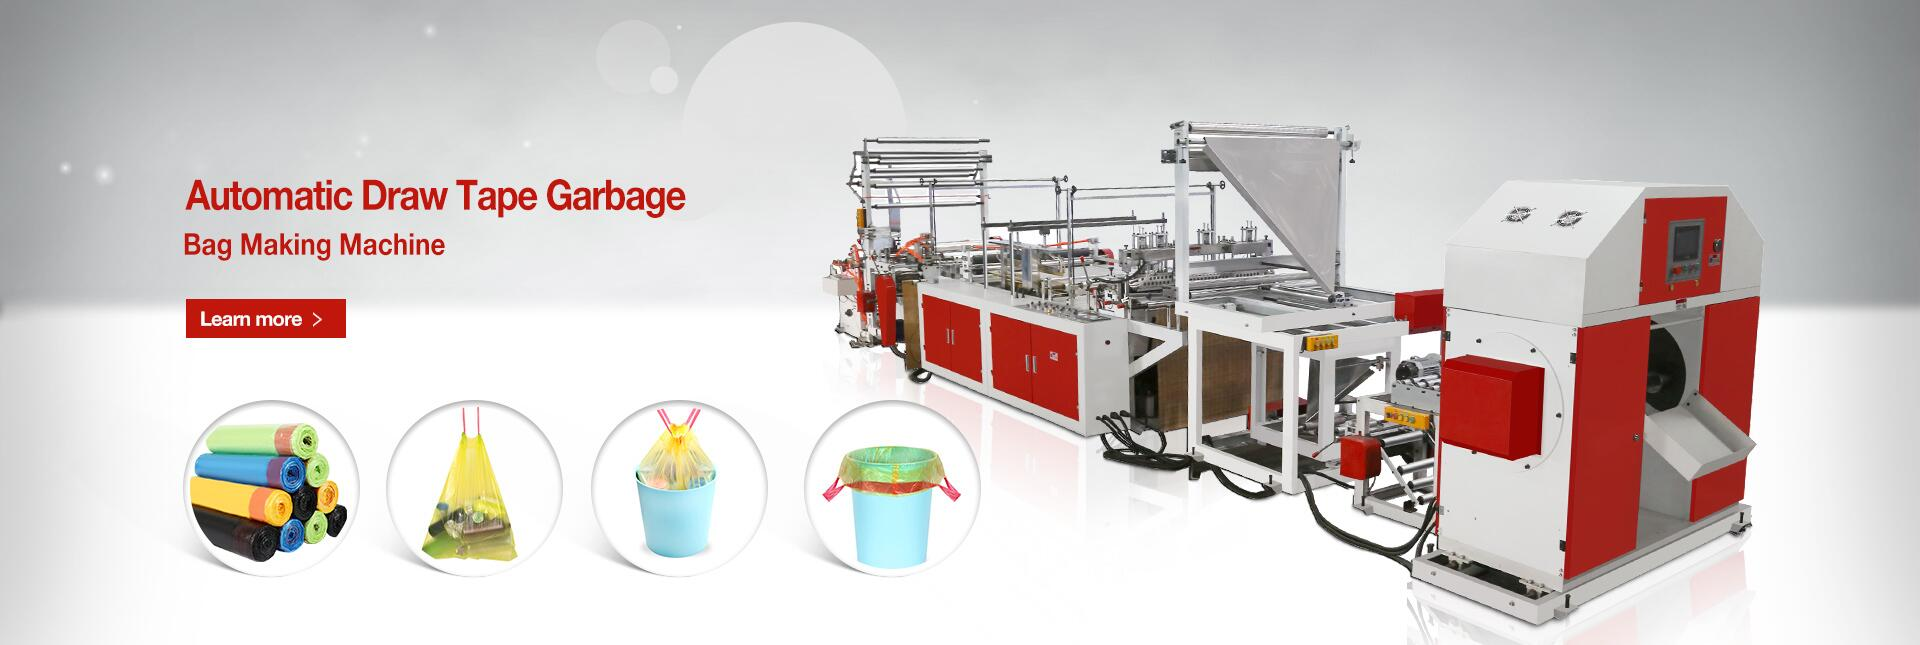 Draw Tape Garbage Bag Making Machine